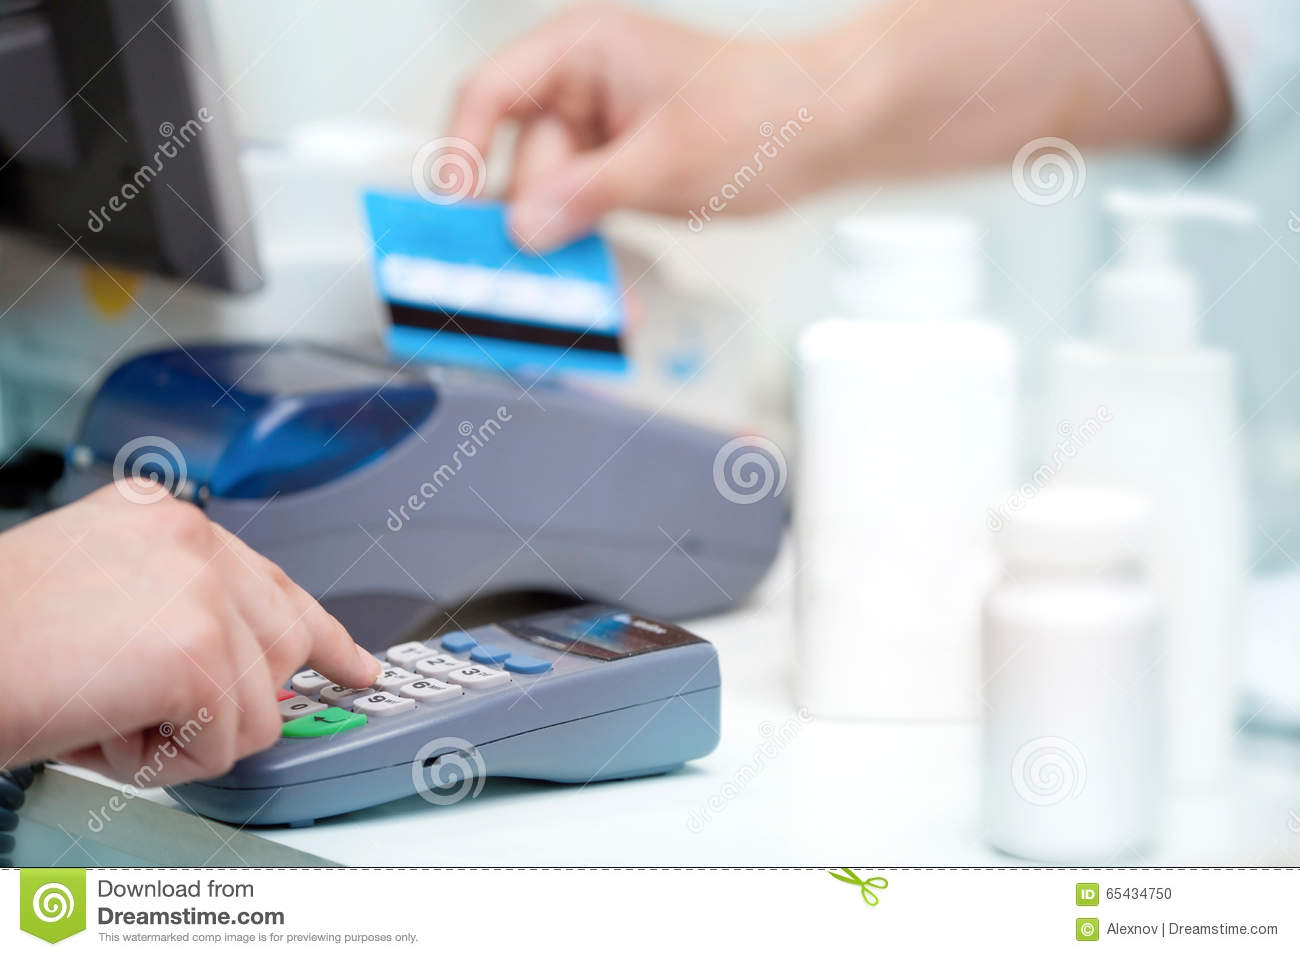 POS Terminal Transaction. Hand Swiping A Credit Card. Stock Photo ...